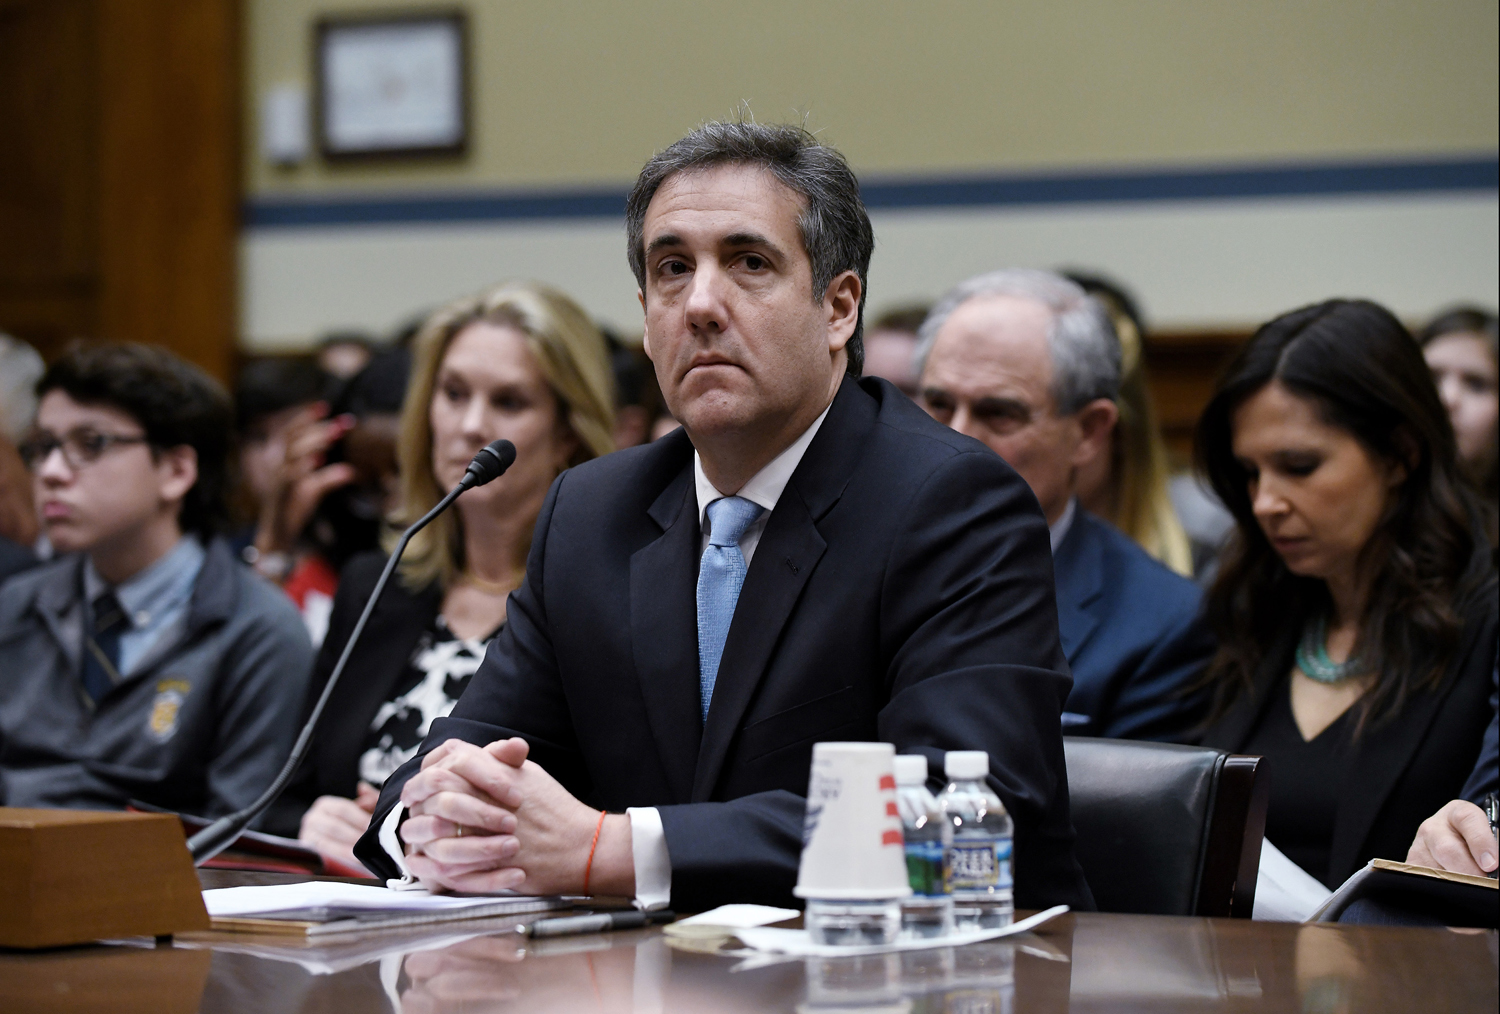 Michael Cohen, U.S. President Donald Trump's former personal attorney, testifies before the House Oversight and Reform Committee in the Rayburn House Office Building on Capitol Hill in Washington, D.C. on Wednesday, Feb. 27.